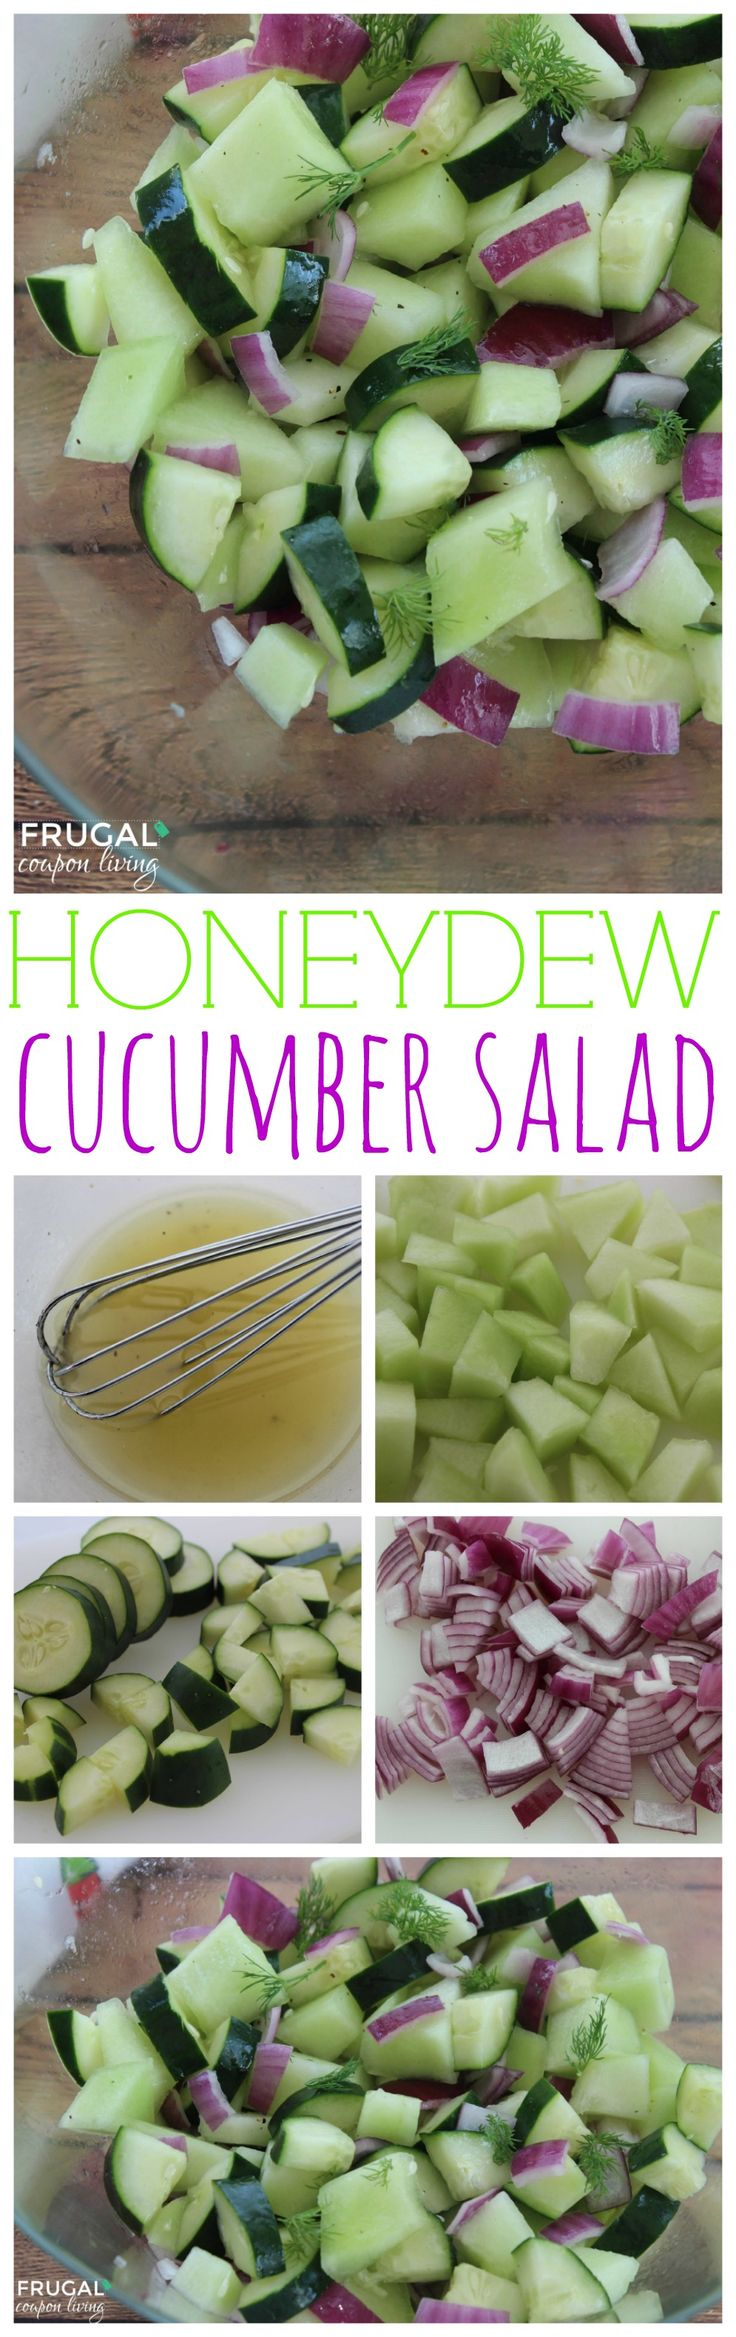 Honeydew Cucumber Salad with Homemade Dressing on Frugal Coupon LIving - Summer Salad Reicpe, Picnic Side Dish Idea.